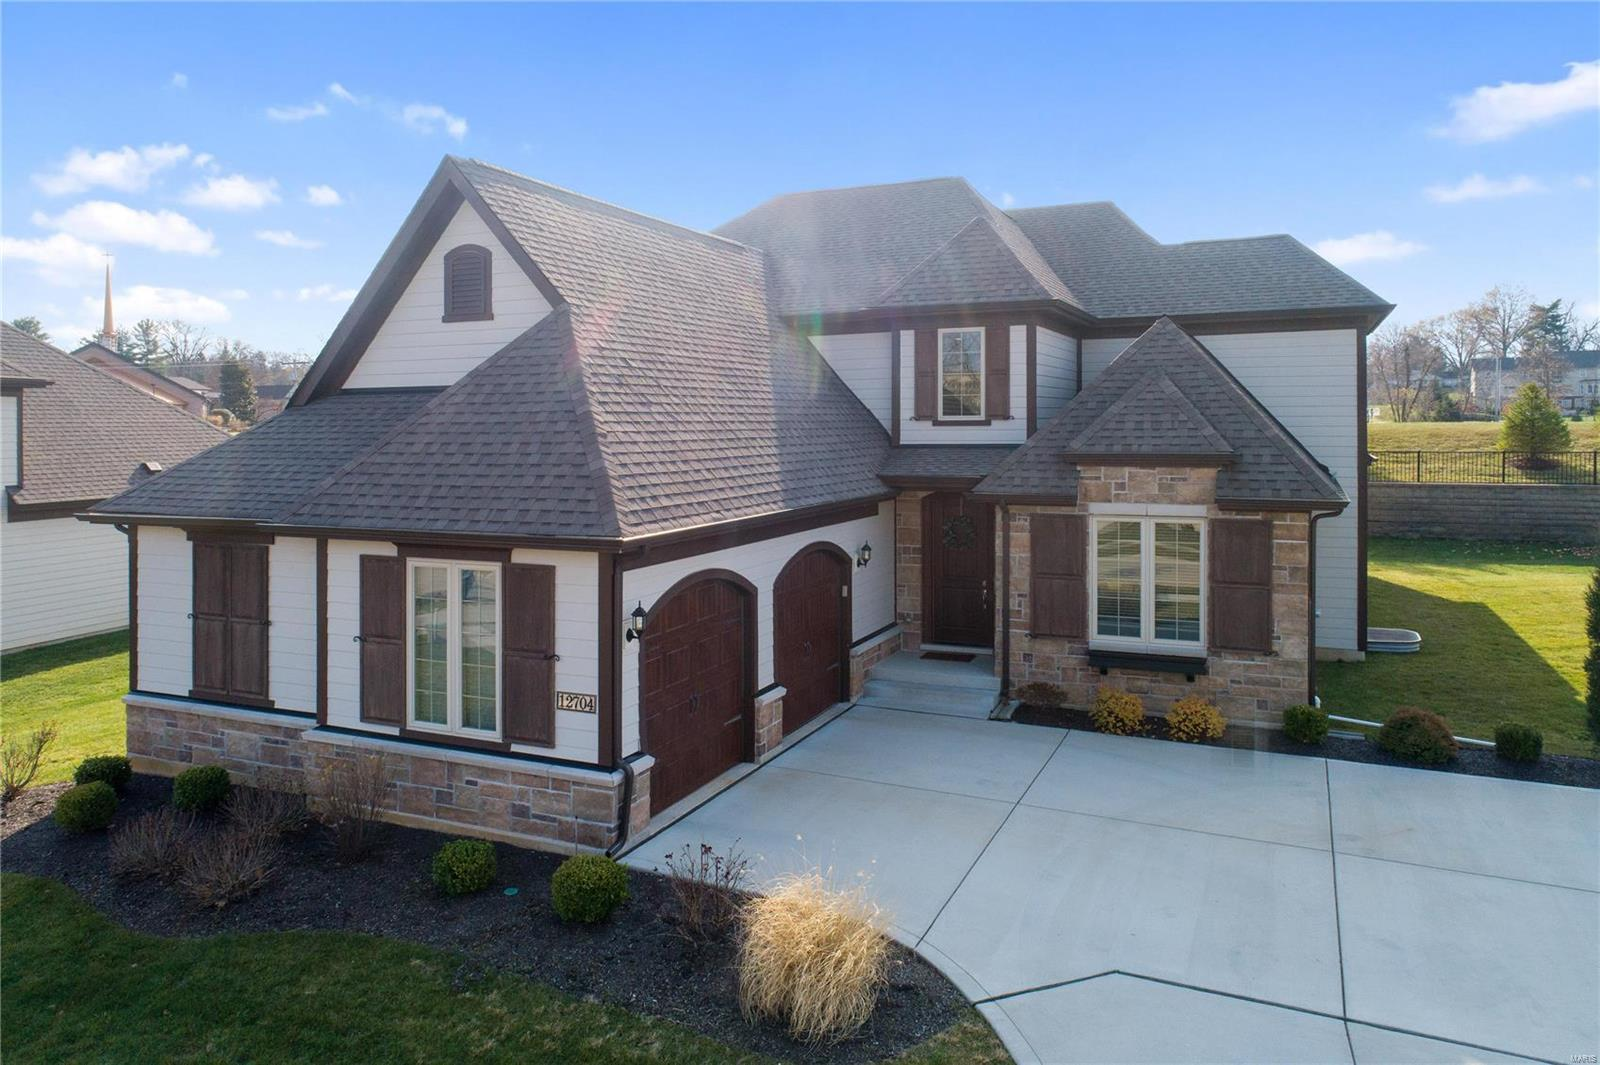 12704 Creekside View Drive Property Photo - Creve Coeur, MO real estate listing